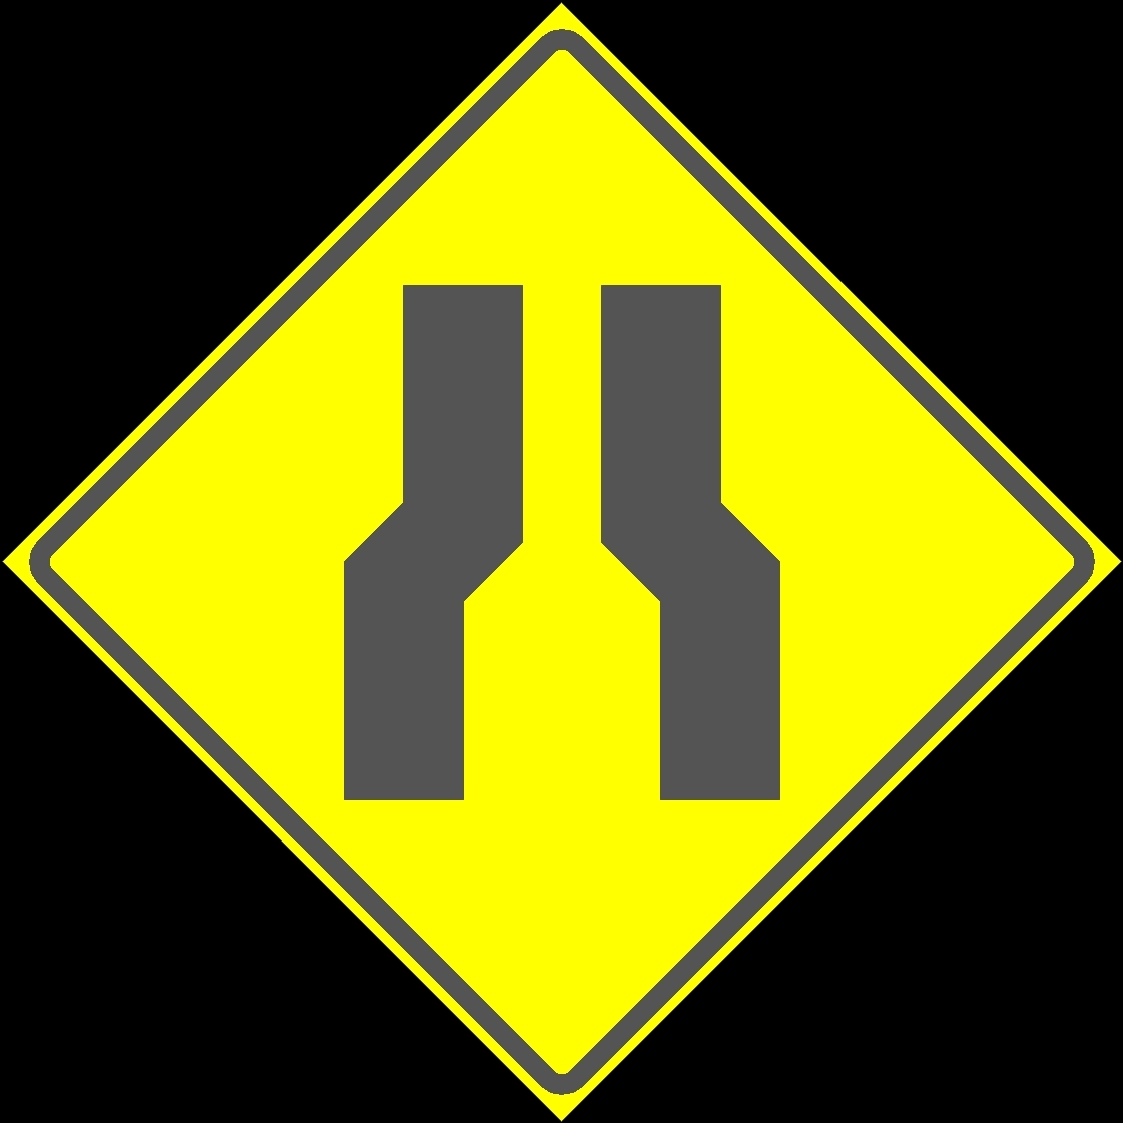 Road Signs And Symbols, Caution, Warning–Brazil DWG Block ...Symbols